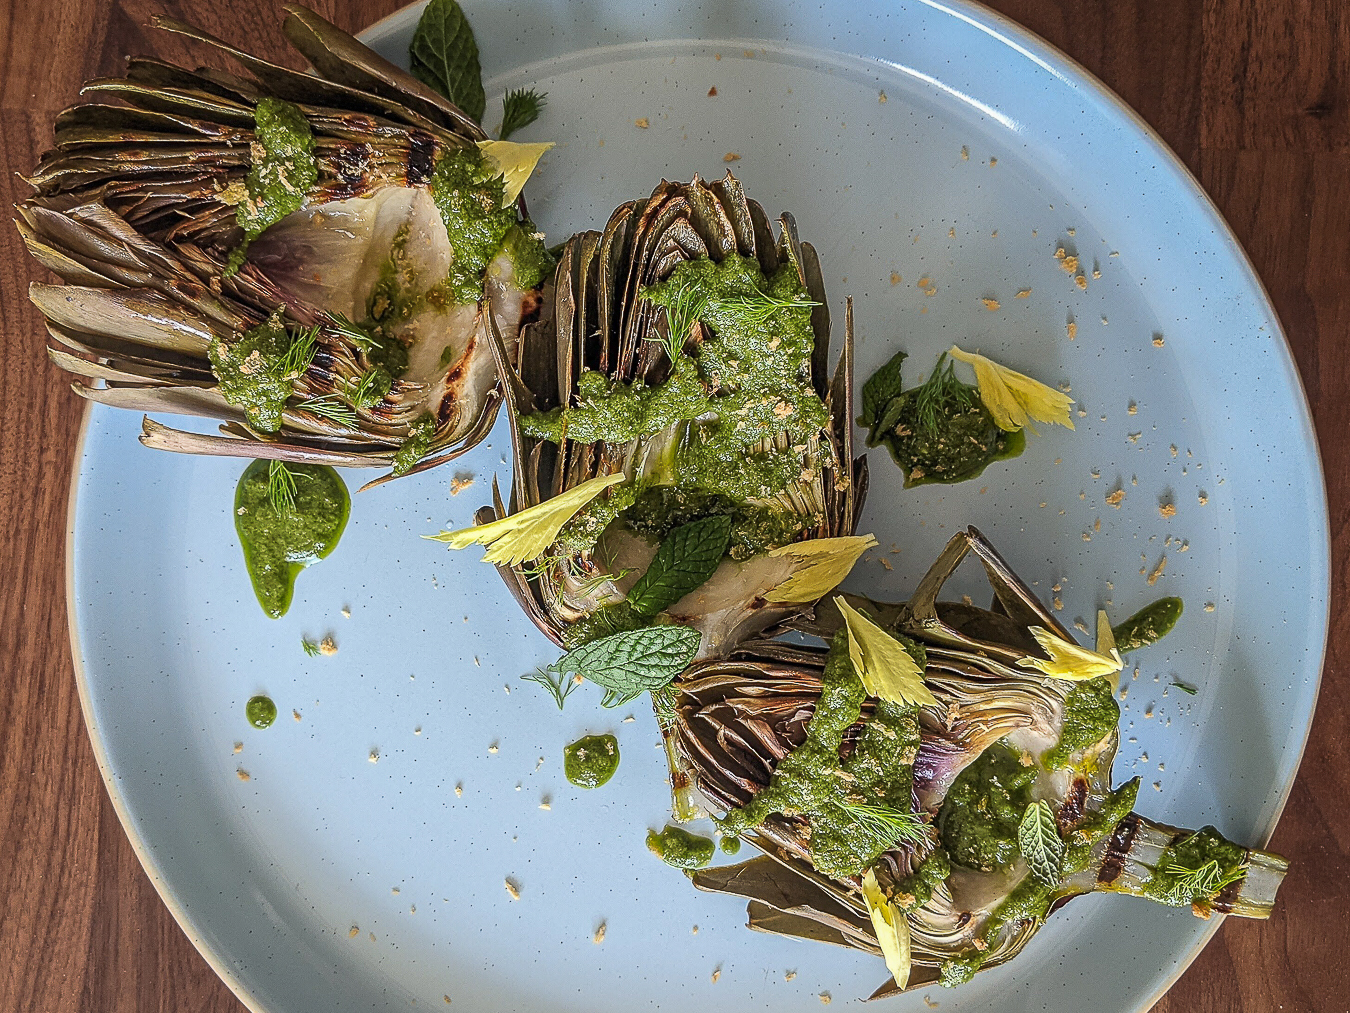 Grilled artichokes with salsa verde and herbs